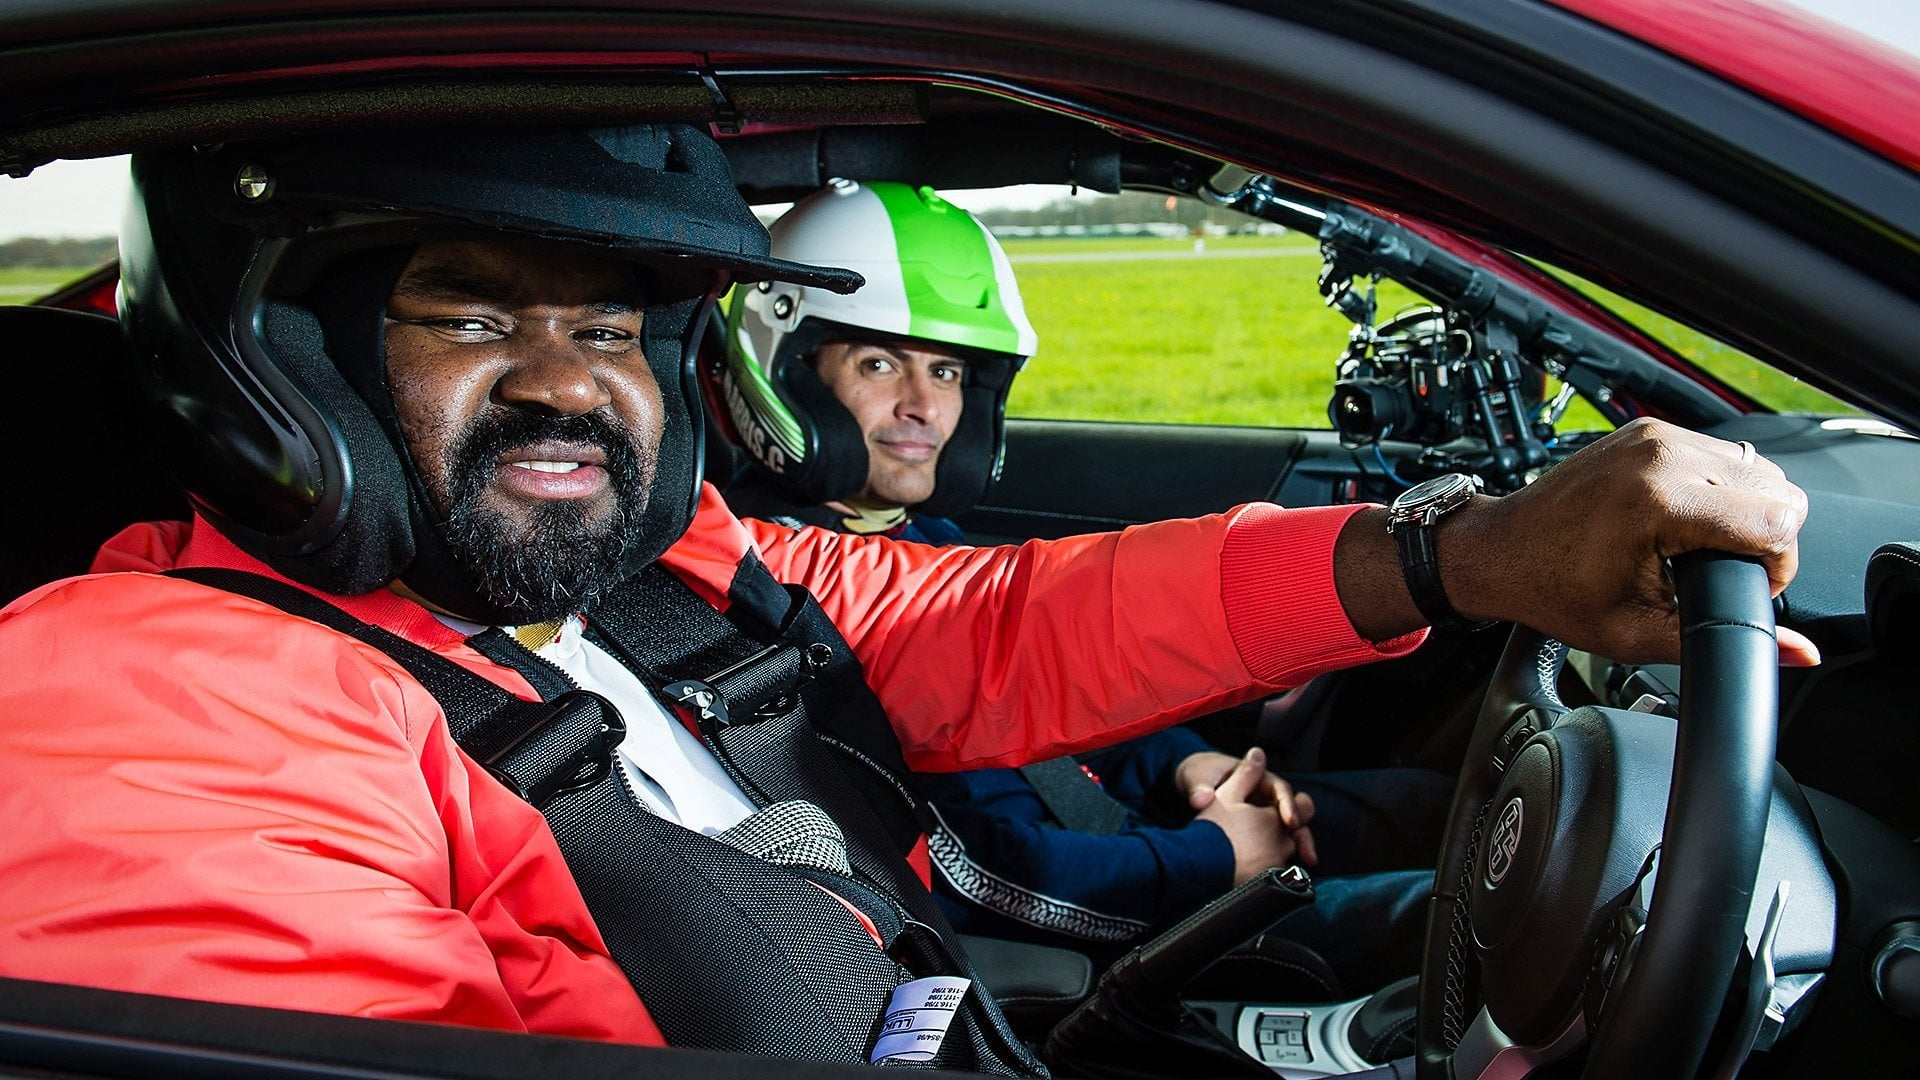 Le Meilleur 【Watch】 Top Gear 26×3 Full Hd On 123Movies New Site Ce Mois Ci